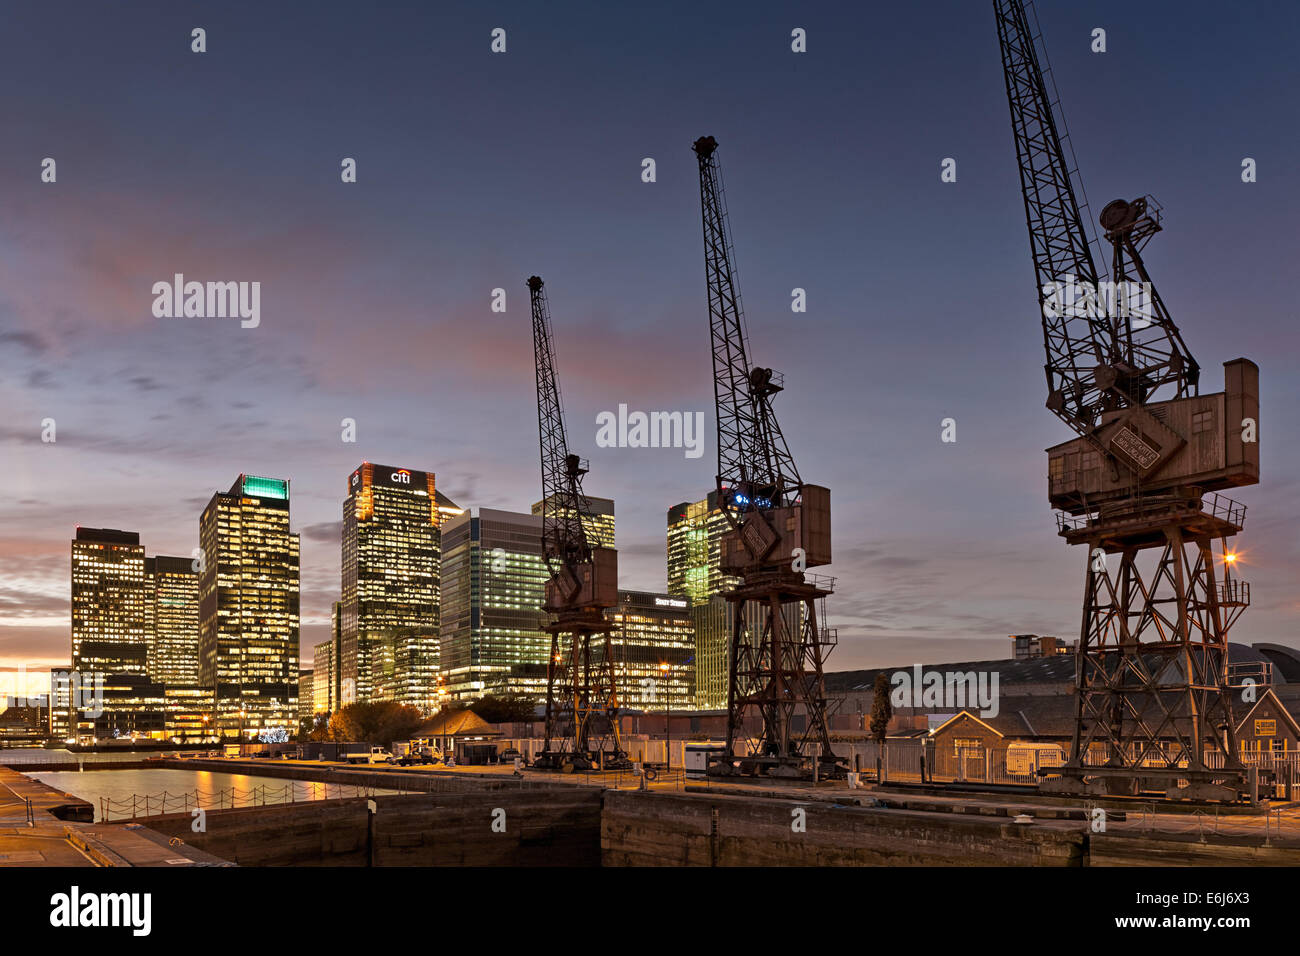 Canary Wharf, London Docklands with old dock cranes in foreground in at night. - Stock Image